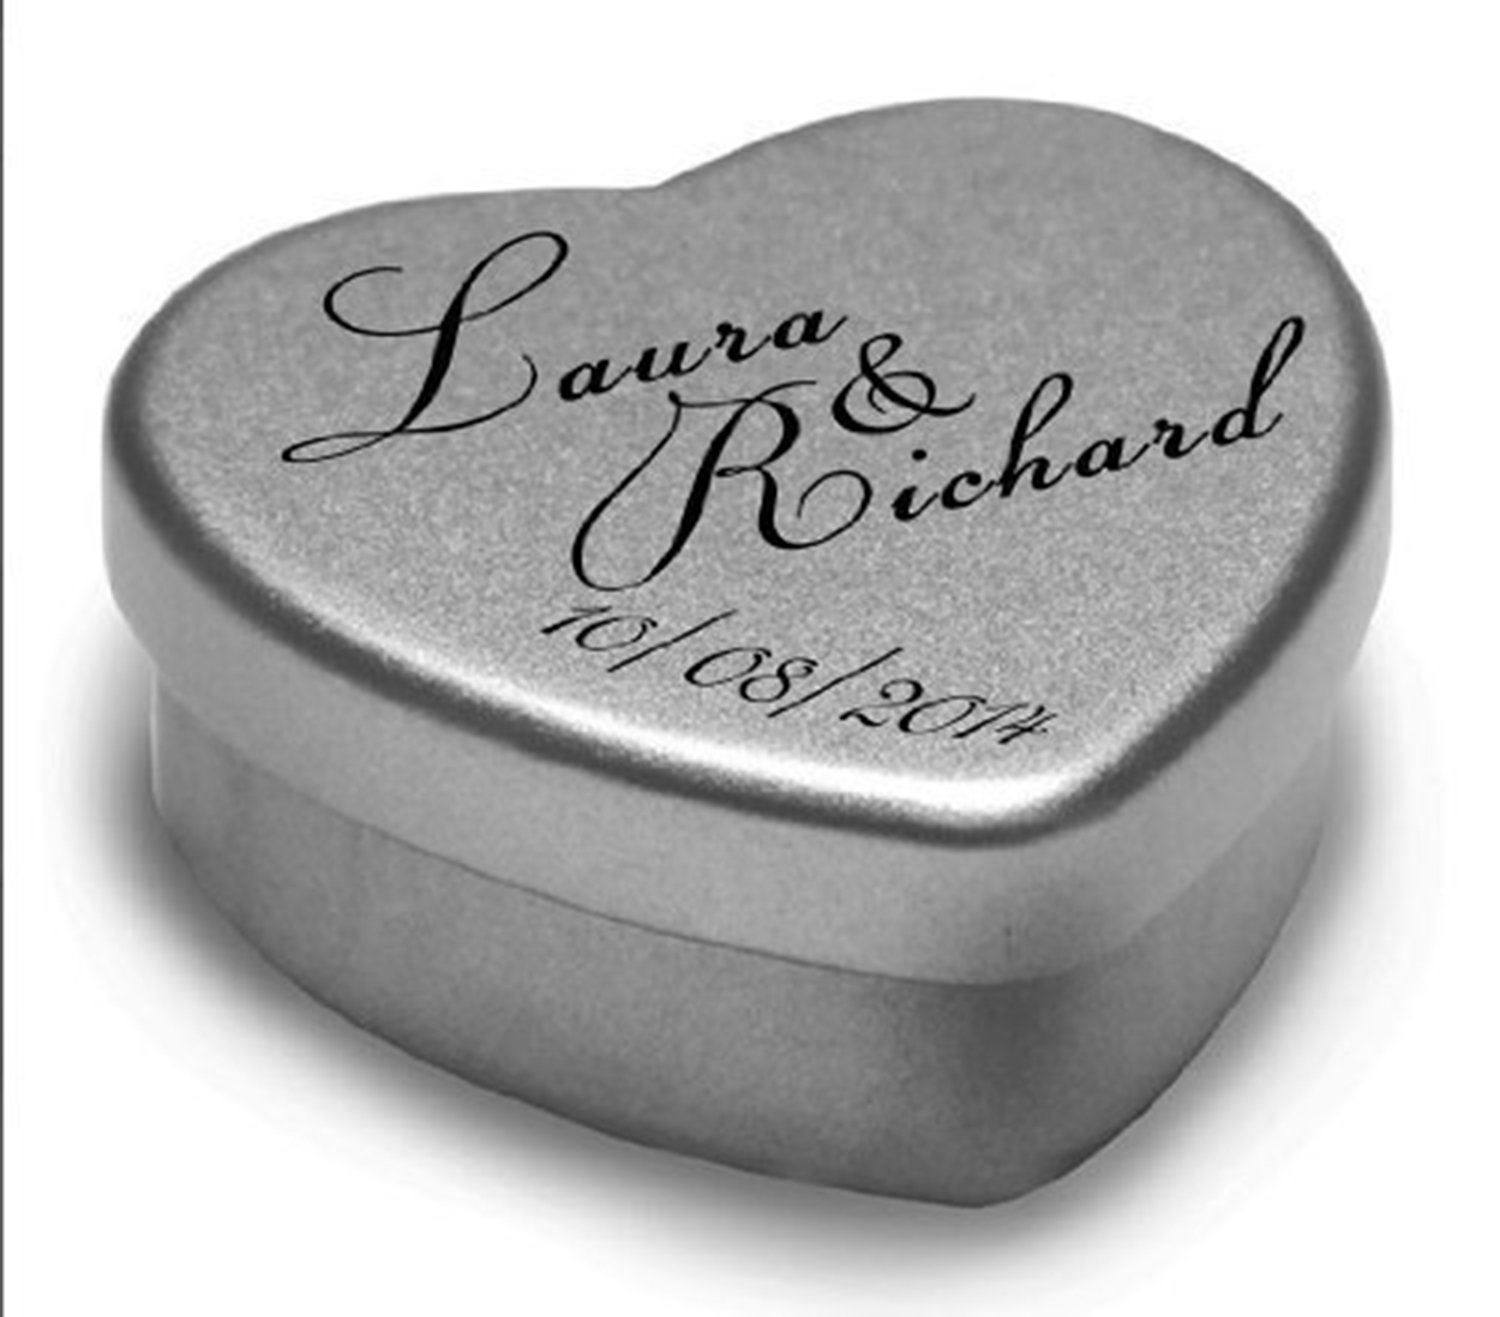 1 Luxury Personalised Heart Shaped Wedding Favour makes the Perfect Party Gift Memento Keepsake. Tins are filled with Mints, Chocolates, or Sweets. Gift In Can Ltd